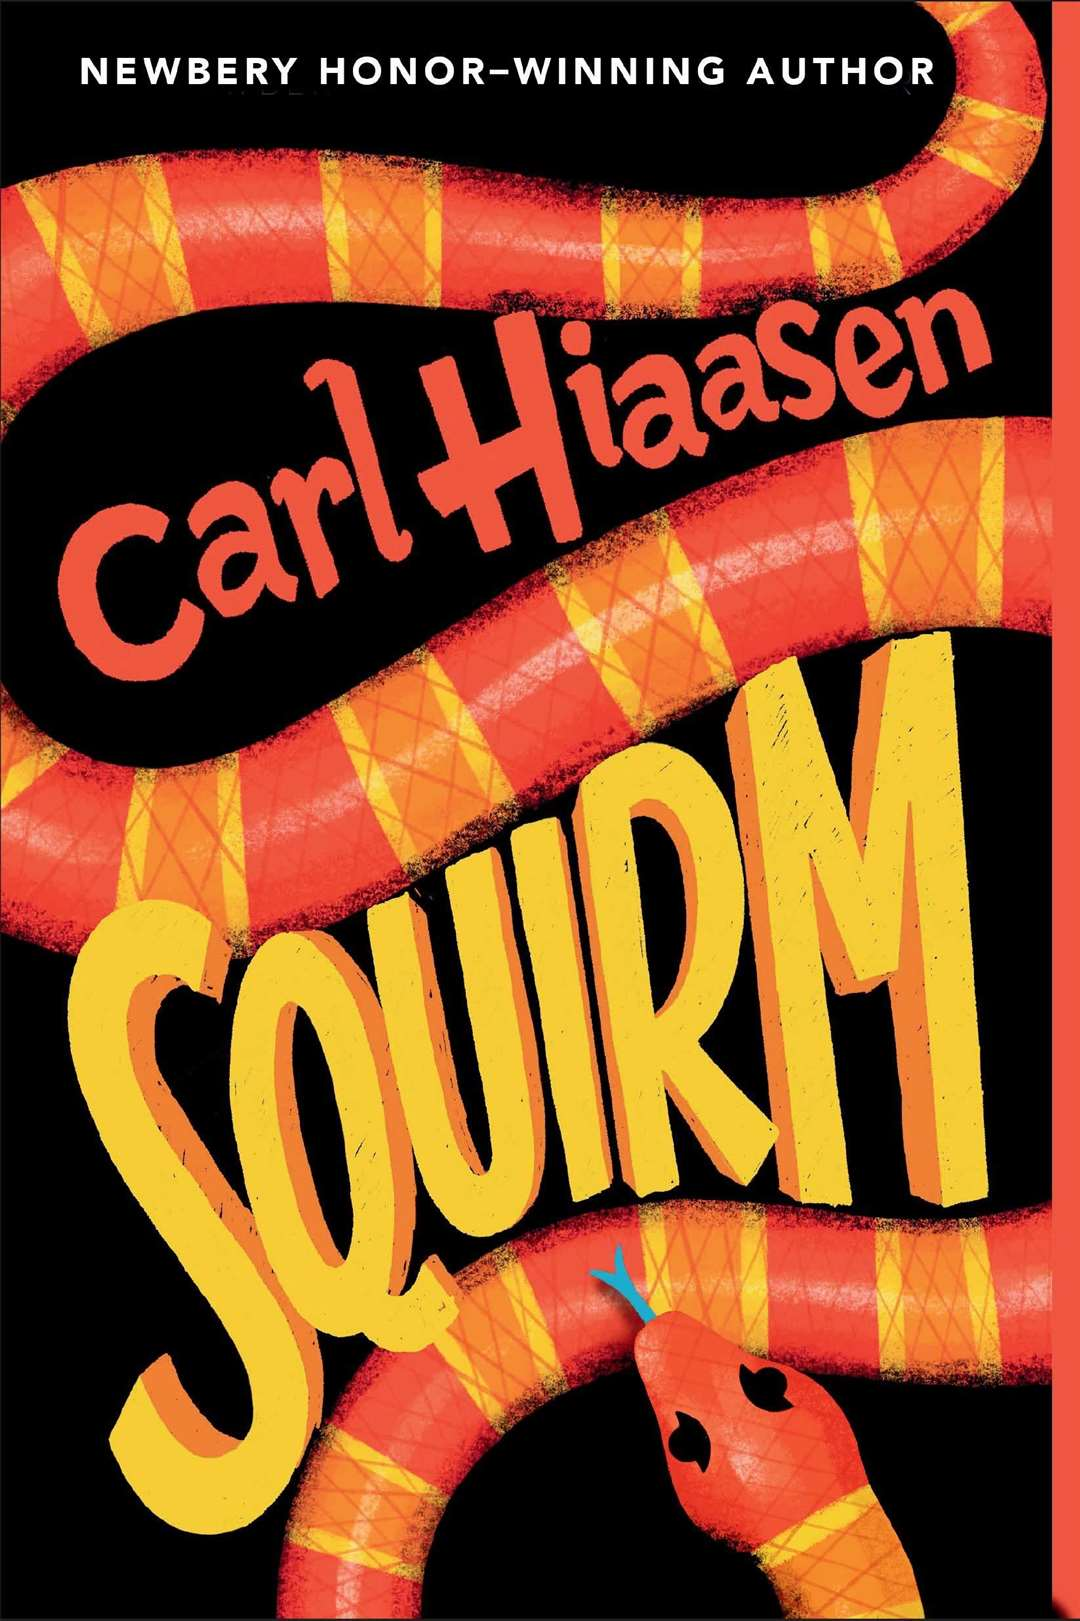 Squirm by Carl Hiassen (39035233)